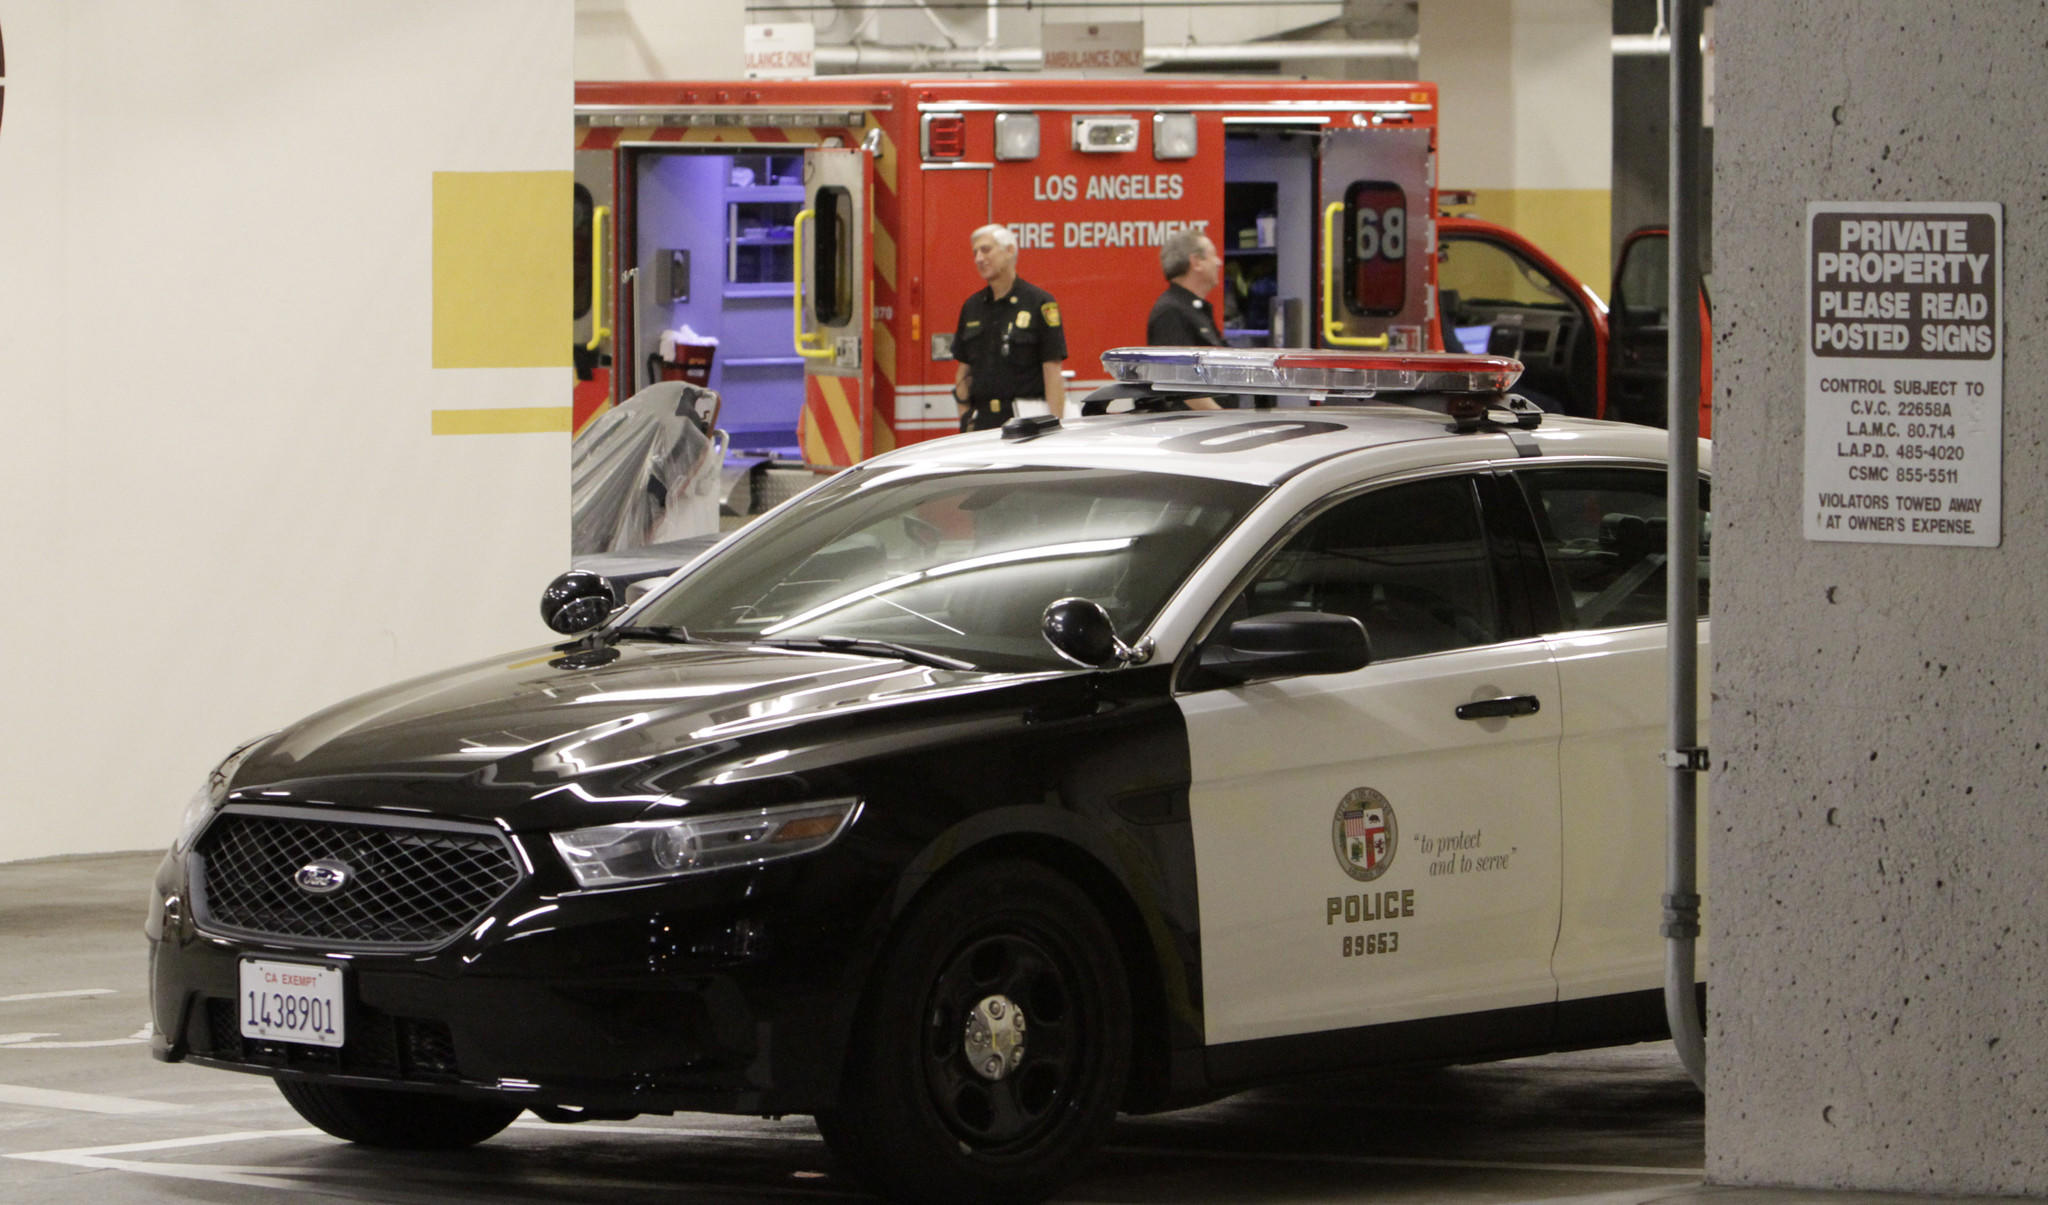 An ambulance and LAPD patrol car are shown at the emergency entrance at Cedars-Sinai Medical Center, where the wounded officer was taken.